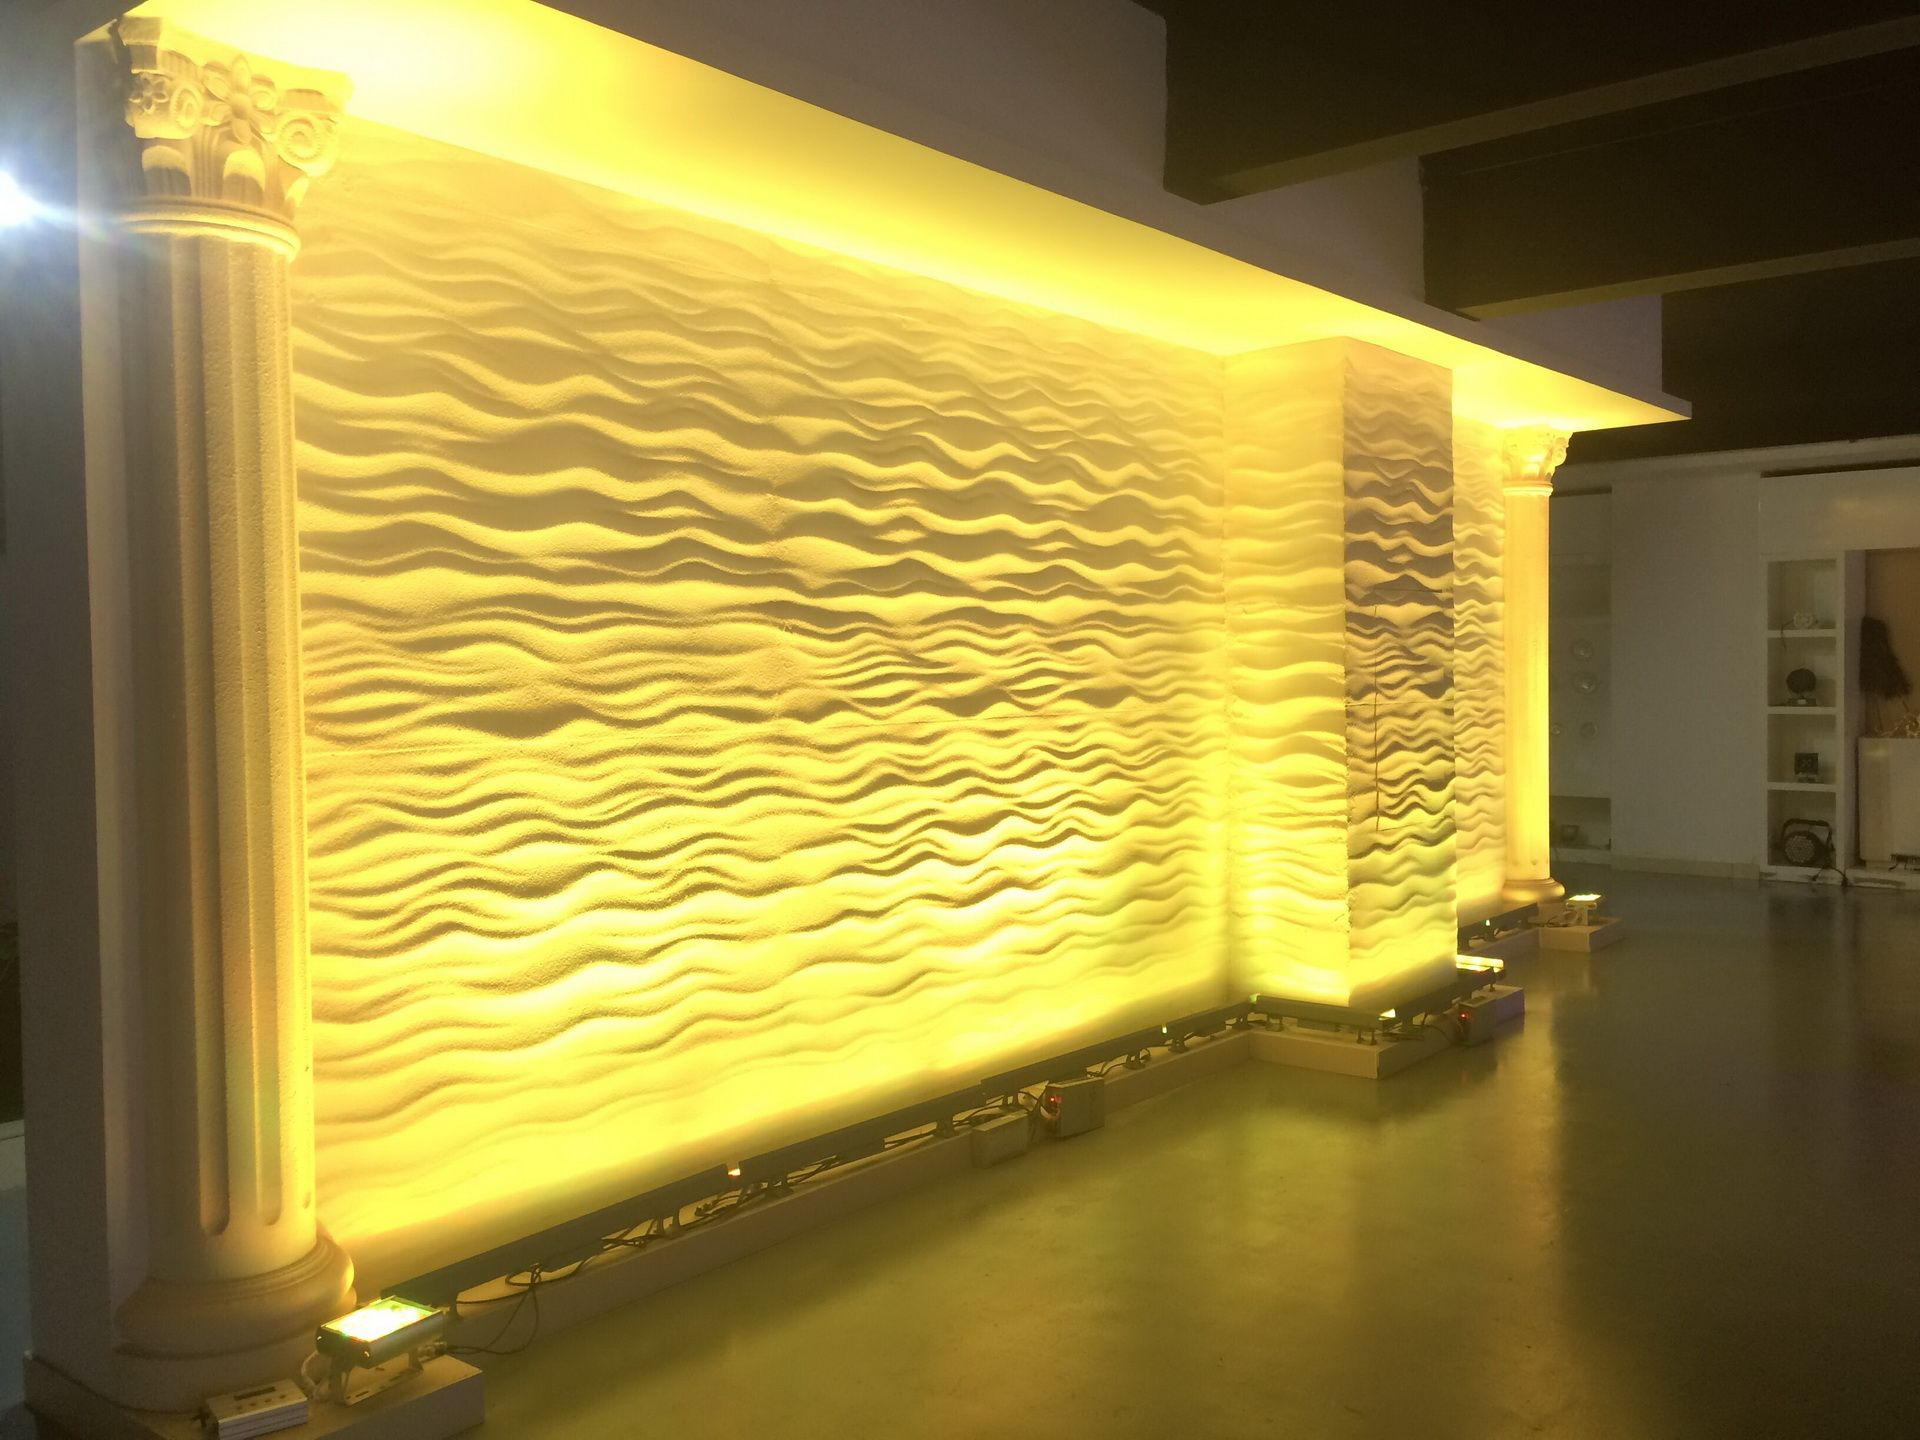 To Brighten Up Your House with Wall wash lights interior | Warisan Lighting  | Wall wash lighting, Washing walls, Wall lights